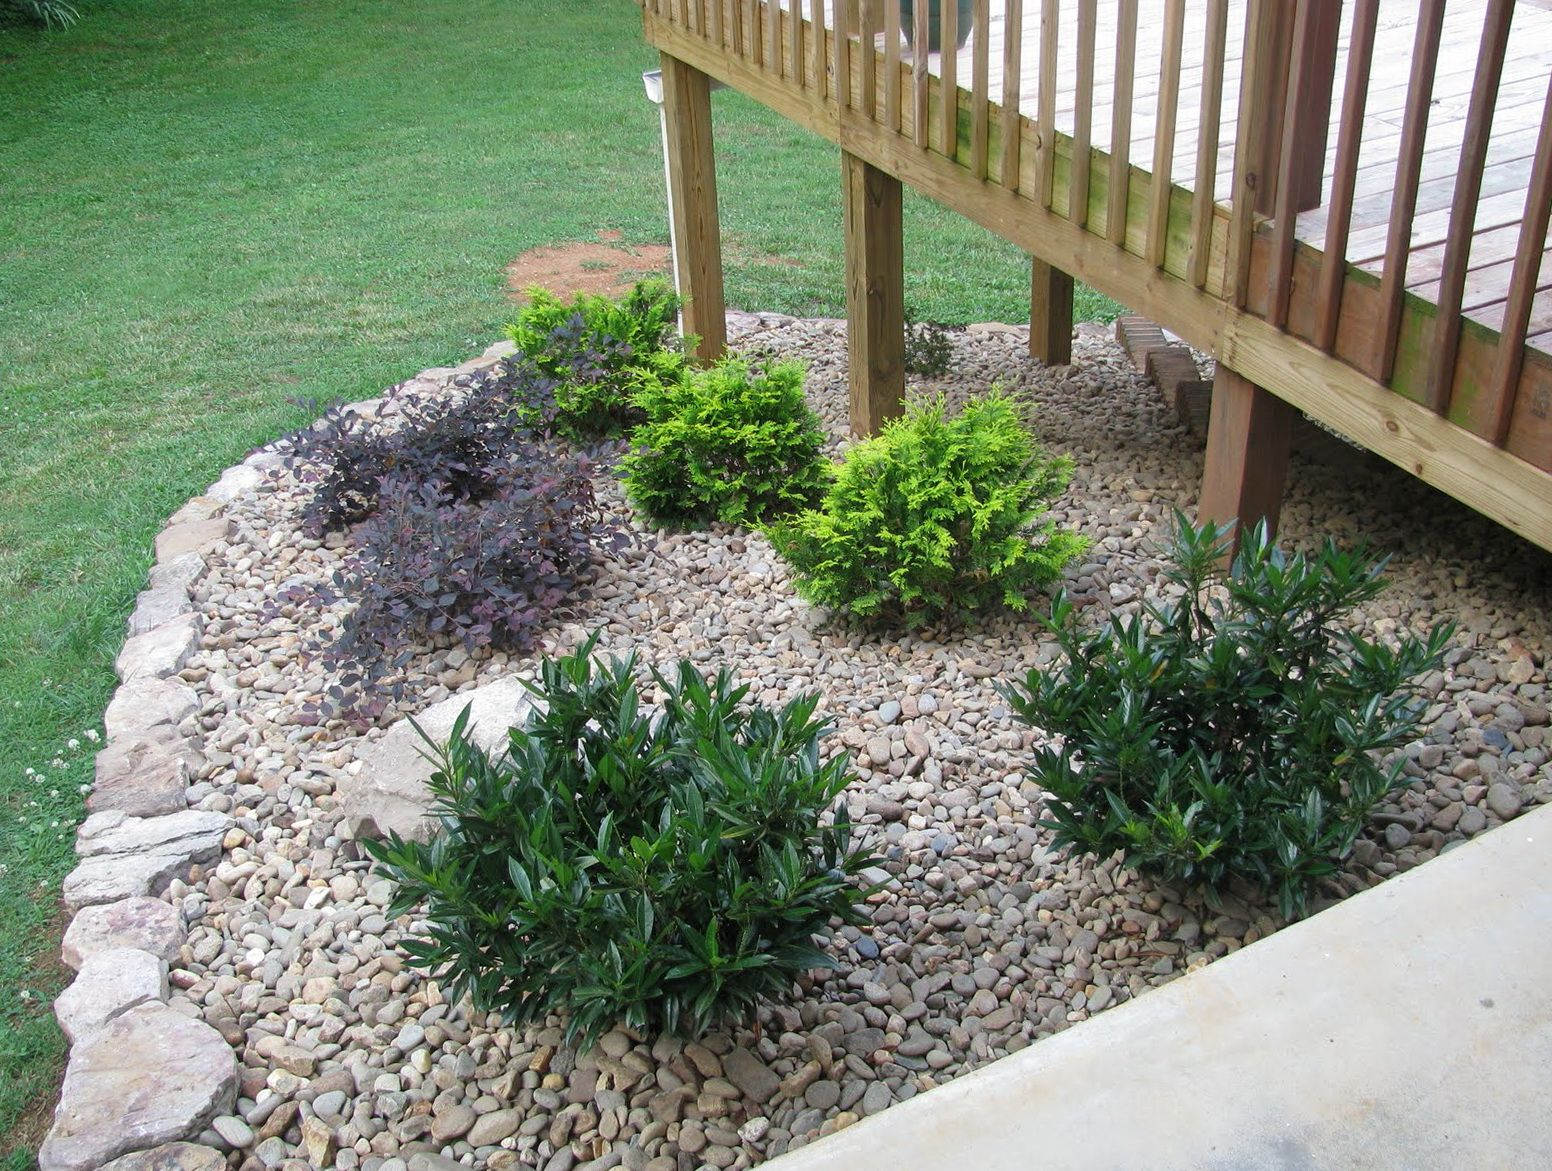 Landscaping Around Deck Stairs Home Design Ideas Landscaping Around Deck Landscaping Around Patio Landscaping Around House